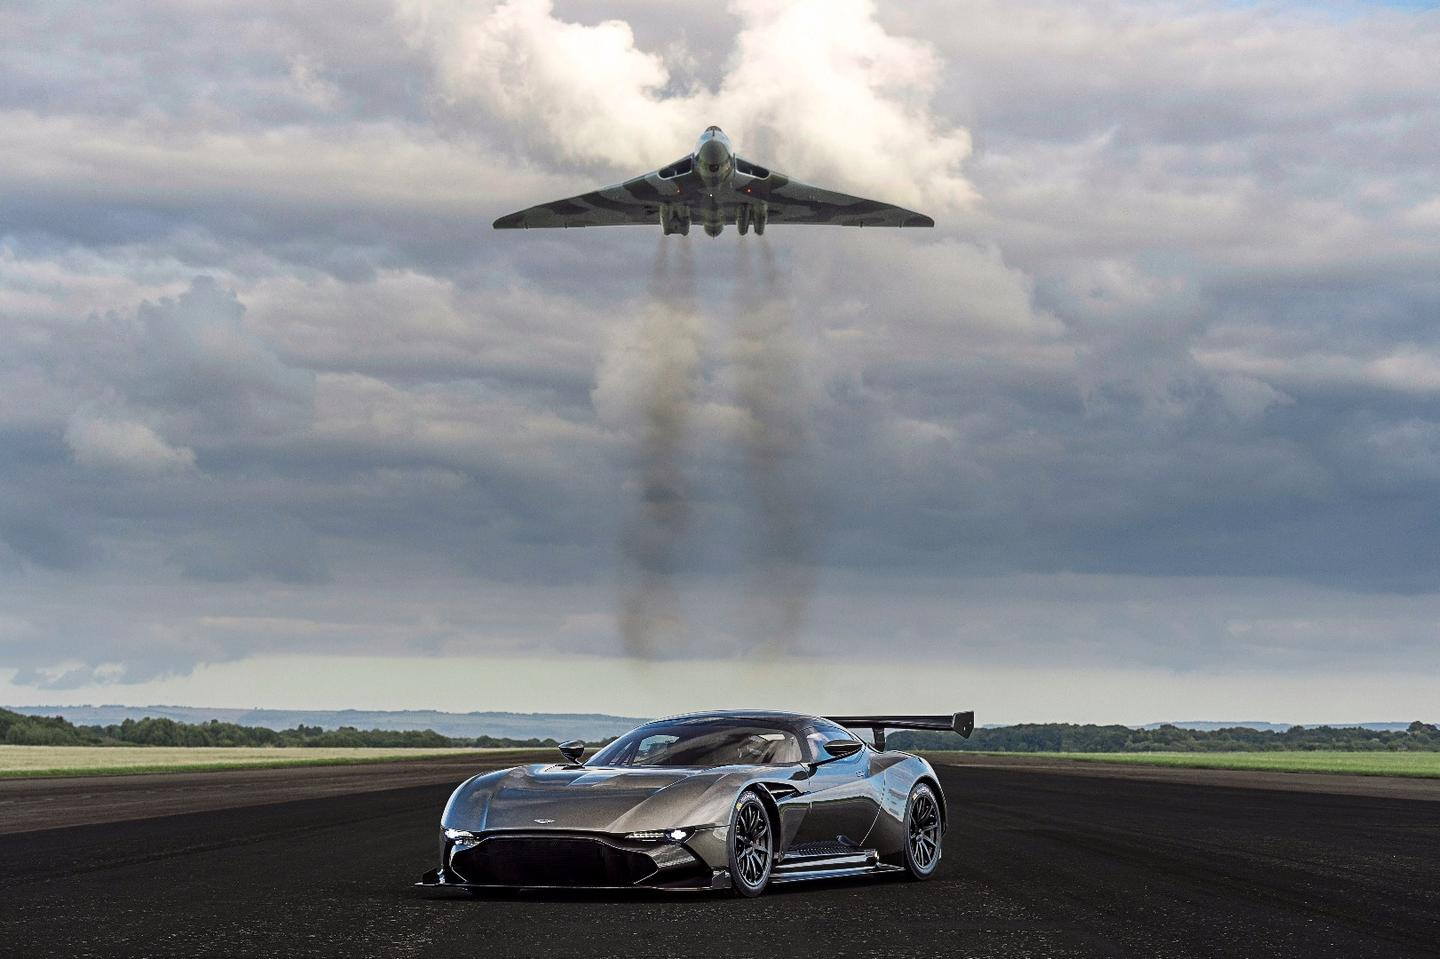 The original Aston Martin Vulcan and its namesake, the Vulcan bomber.